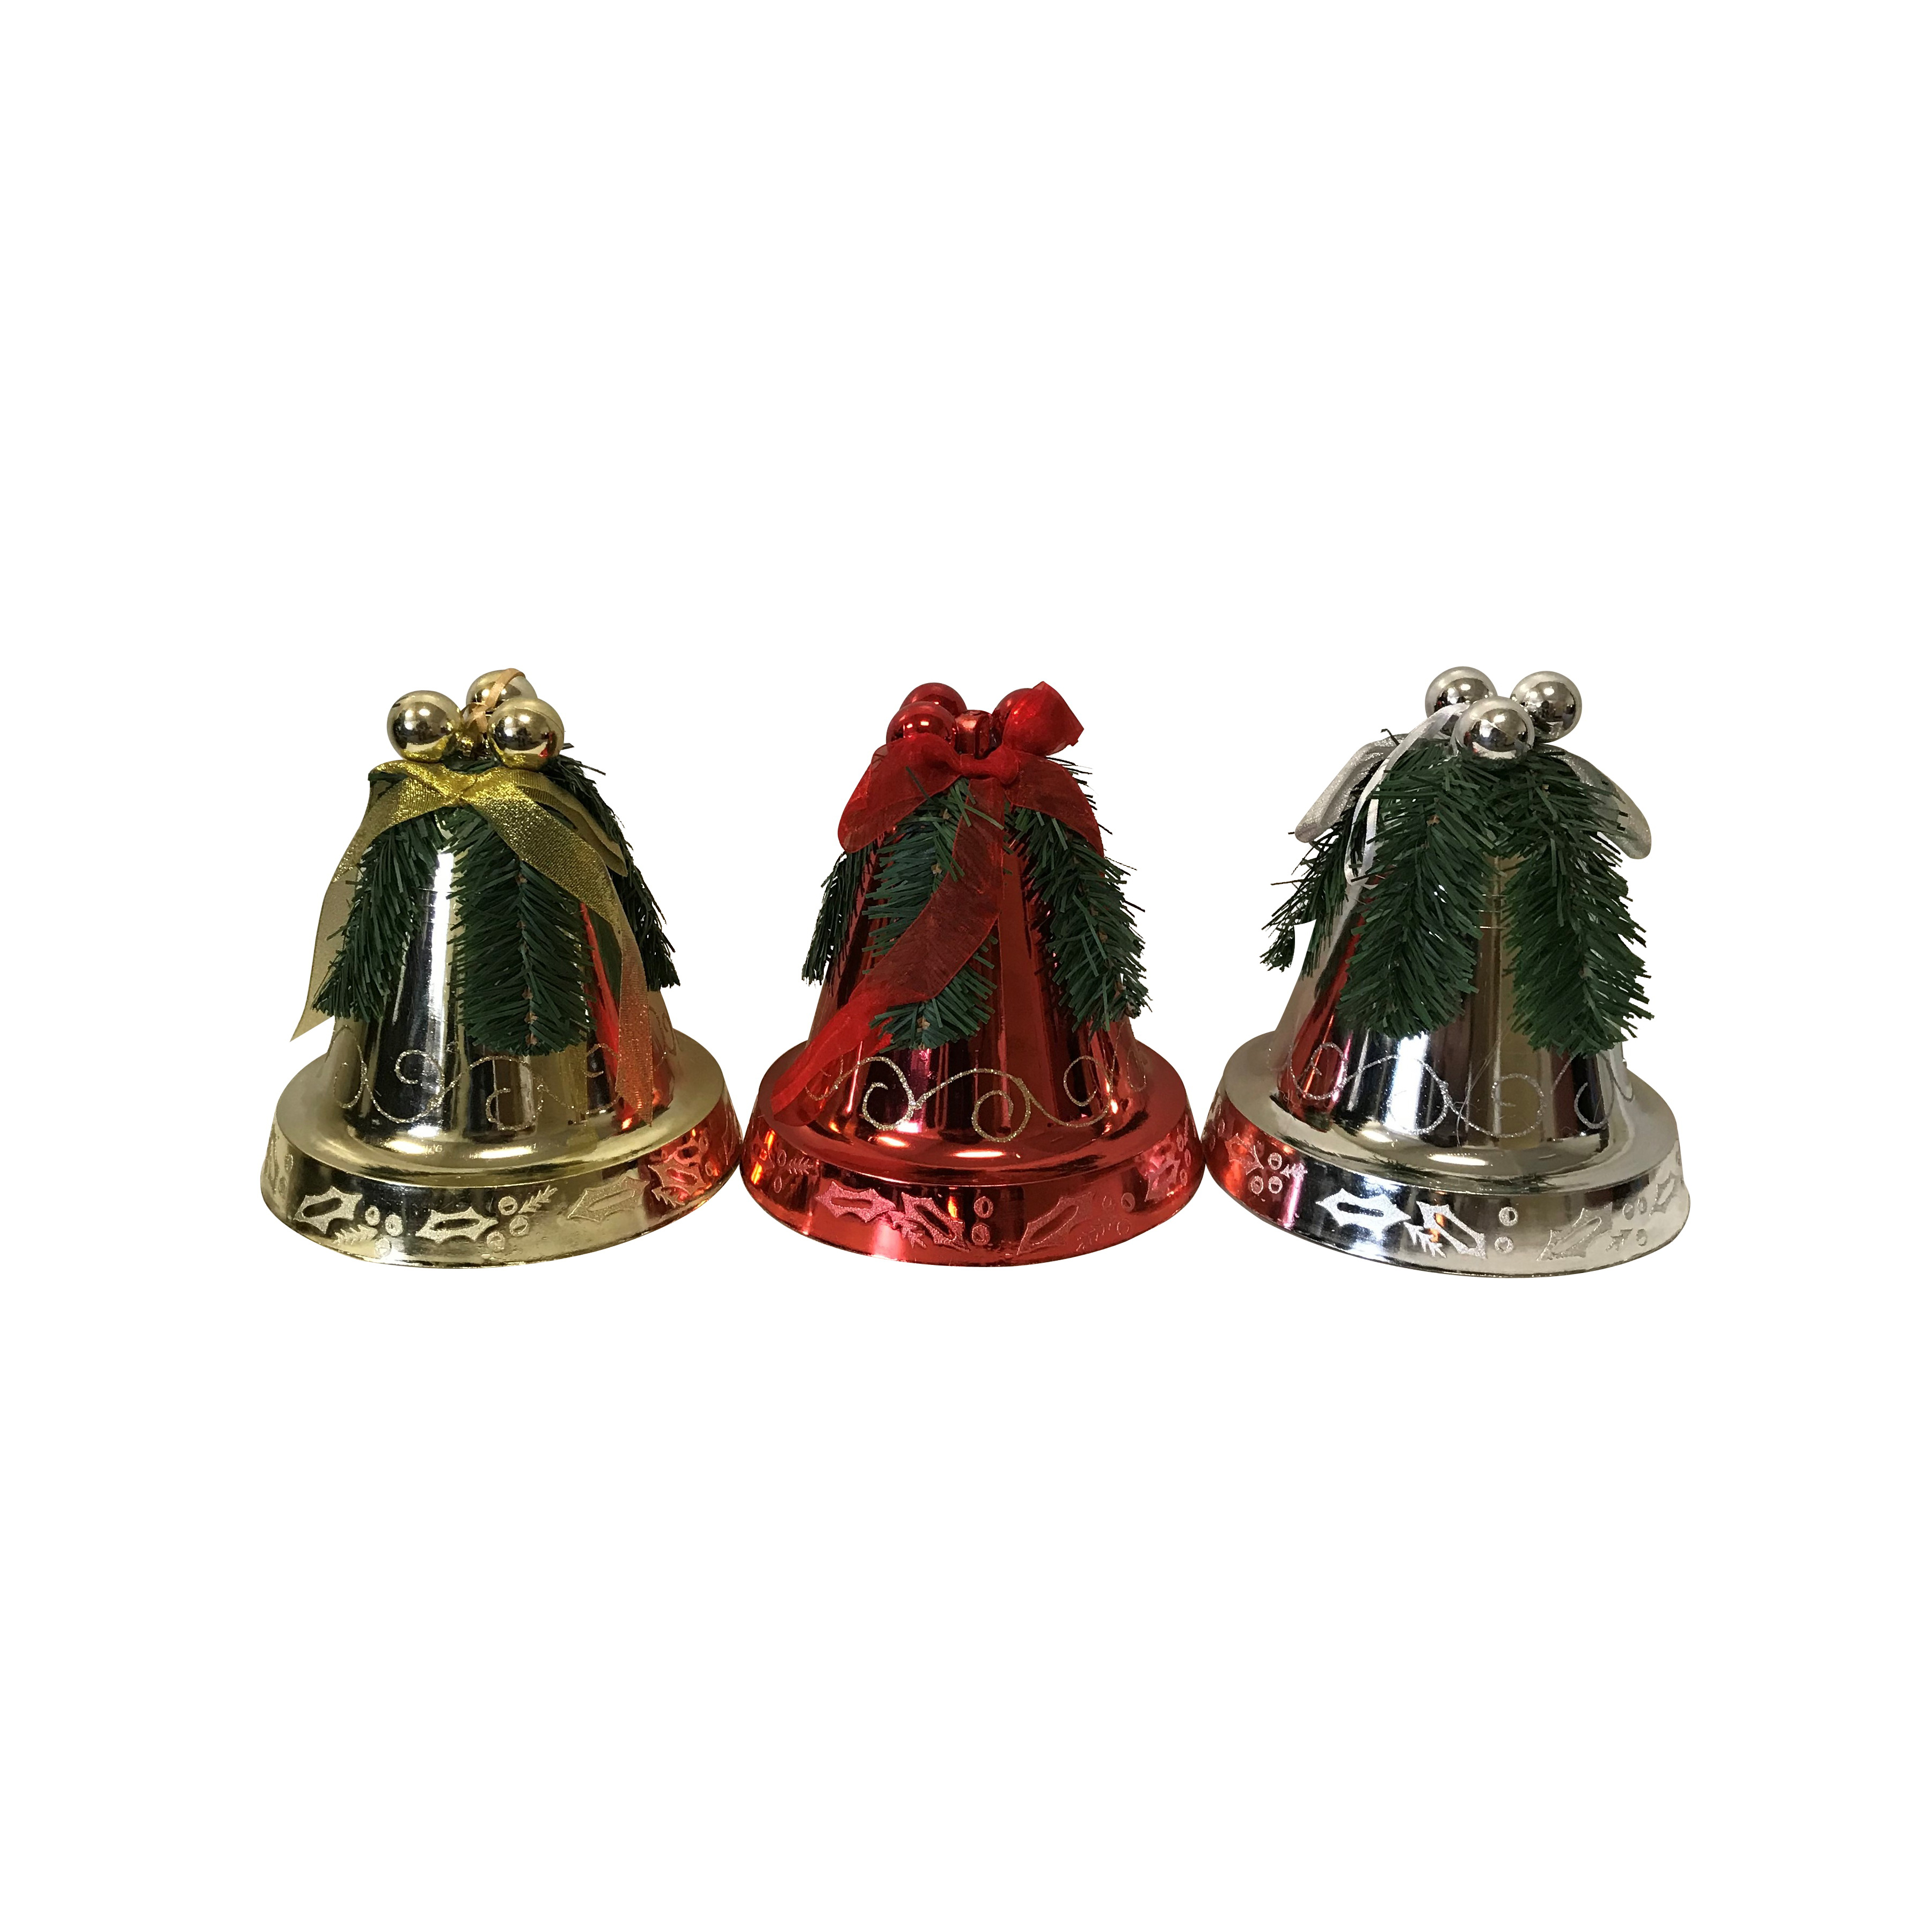 Picture of Santas Forest 99929 Shatterproof Decorated Bell Ornament, 200 mm H, Christmas Ornaments, PVC, Assorted, 8